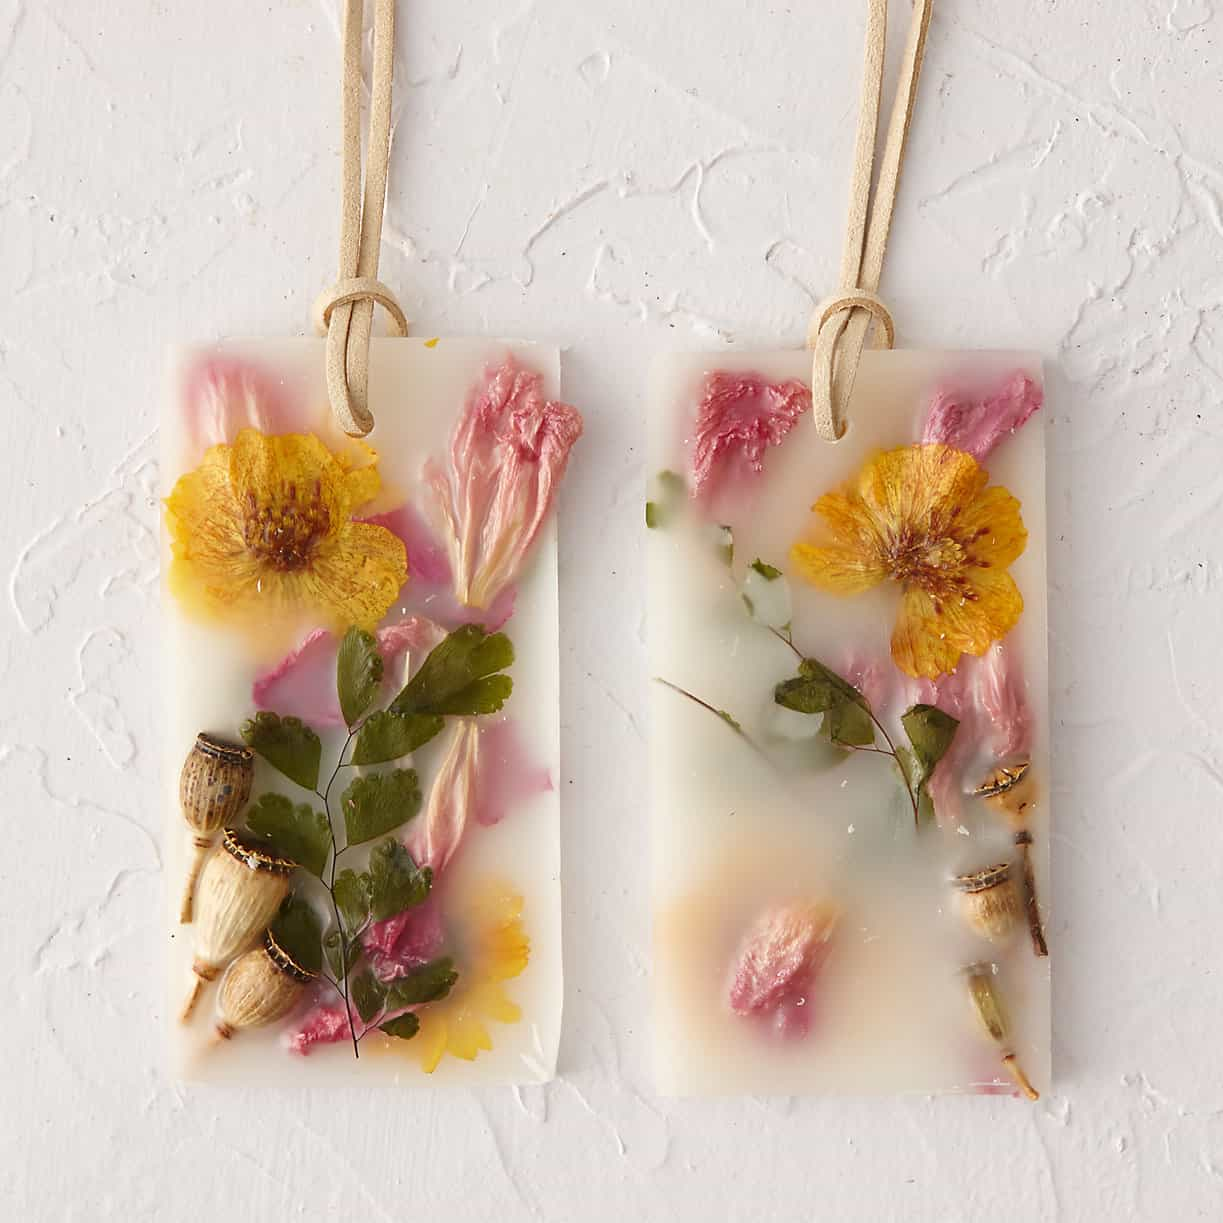 15 Crafts Made With Dried Flowers